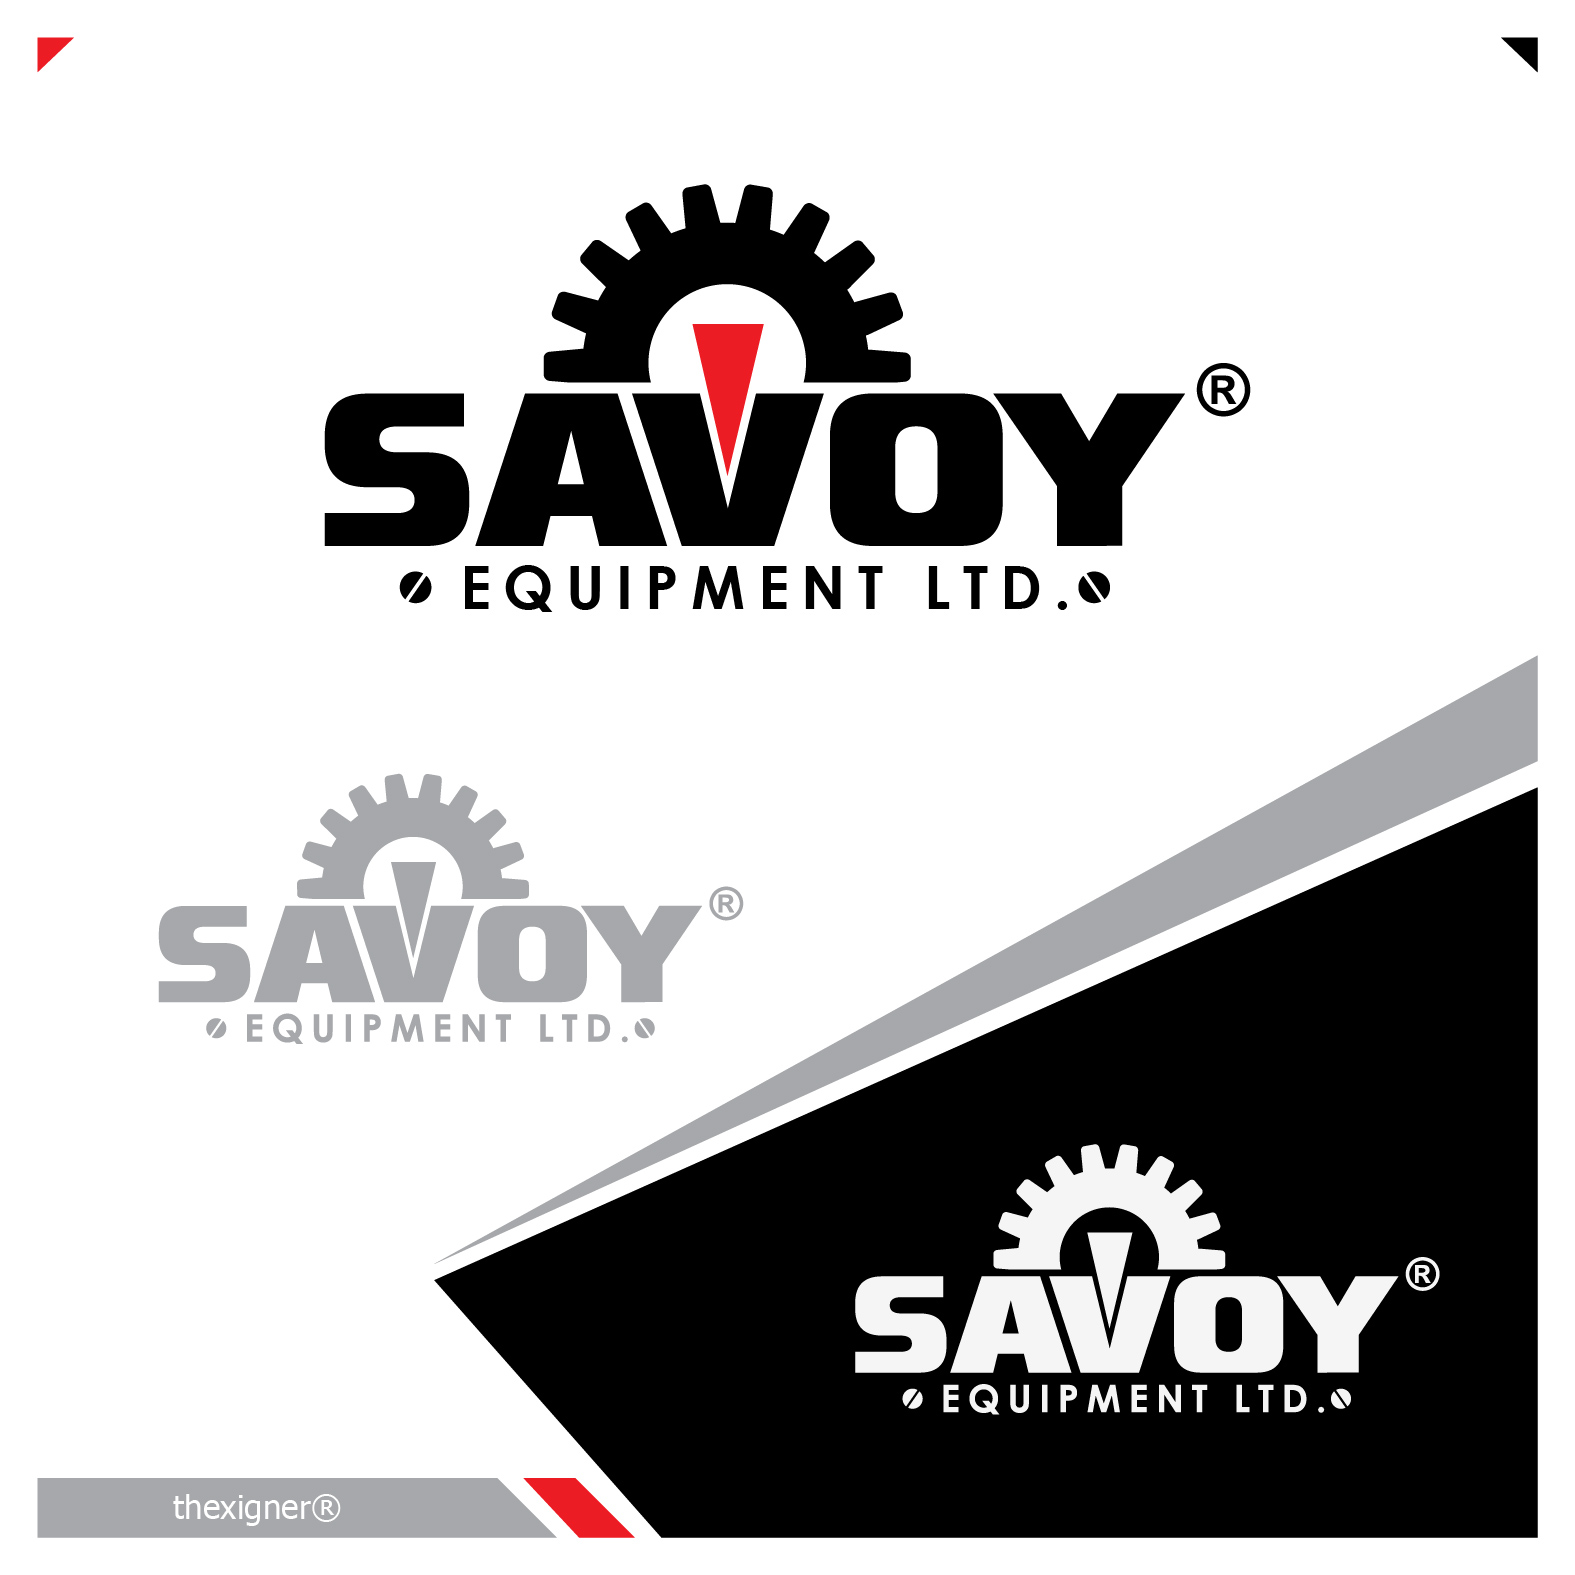 Logo Design by lagalag - Entry No. 32 in the Logo Design Contest Inspiring Logo Design for Savoy Equipment Ltd..